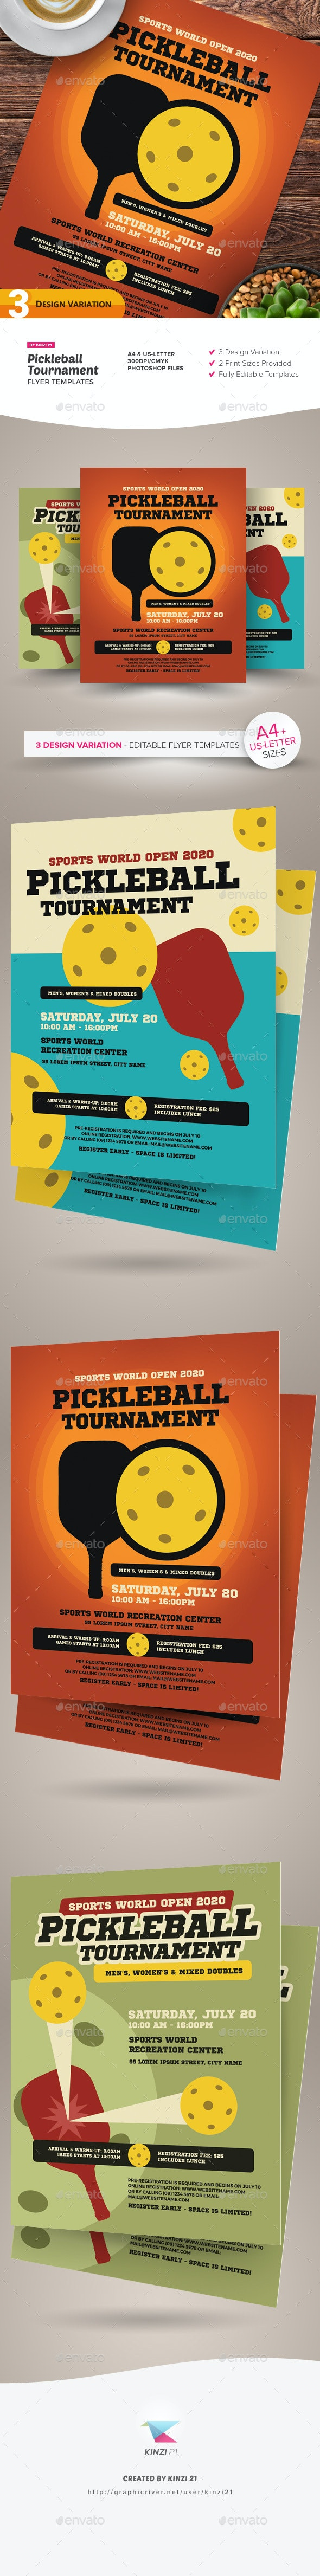 Pickleball Tournament Flyer Templates - Sports Events